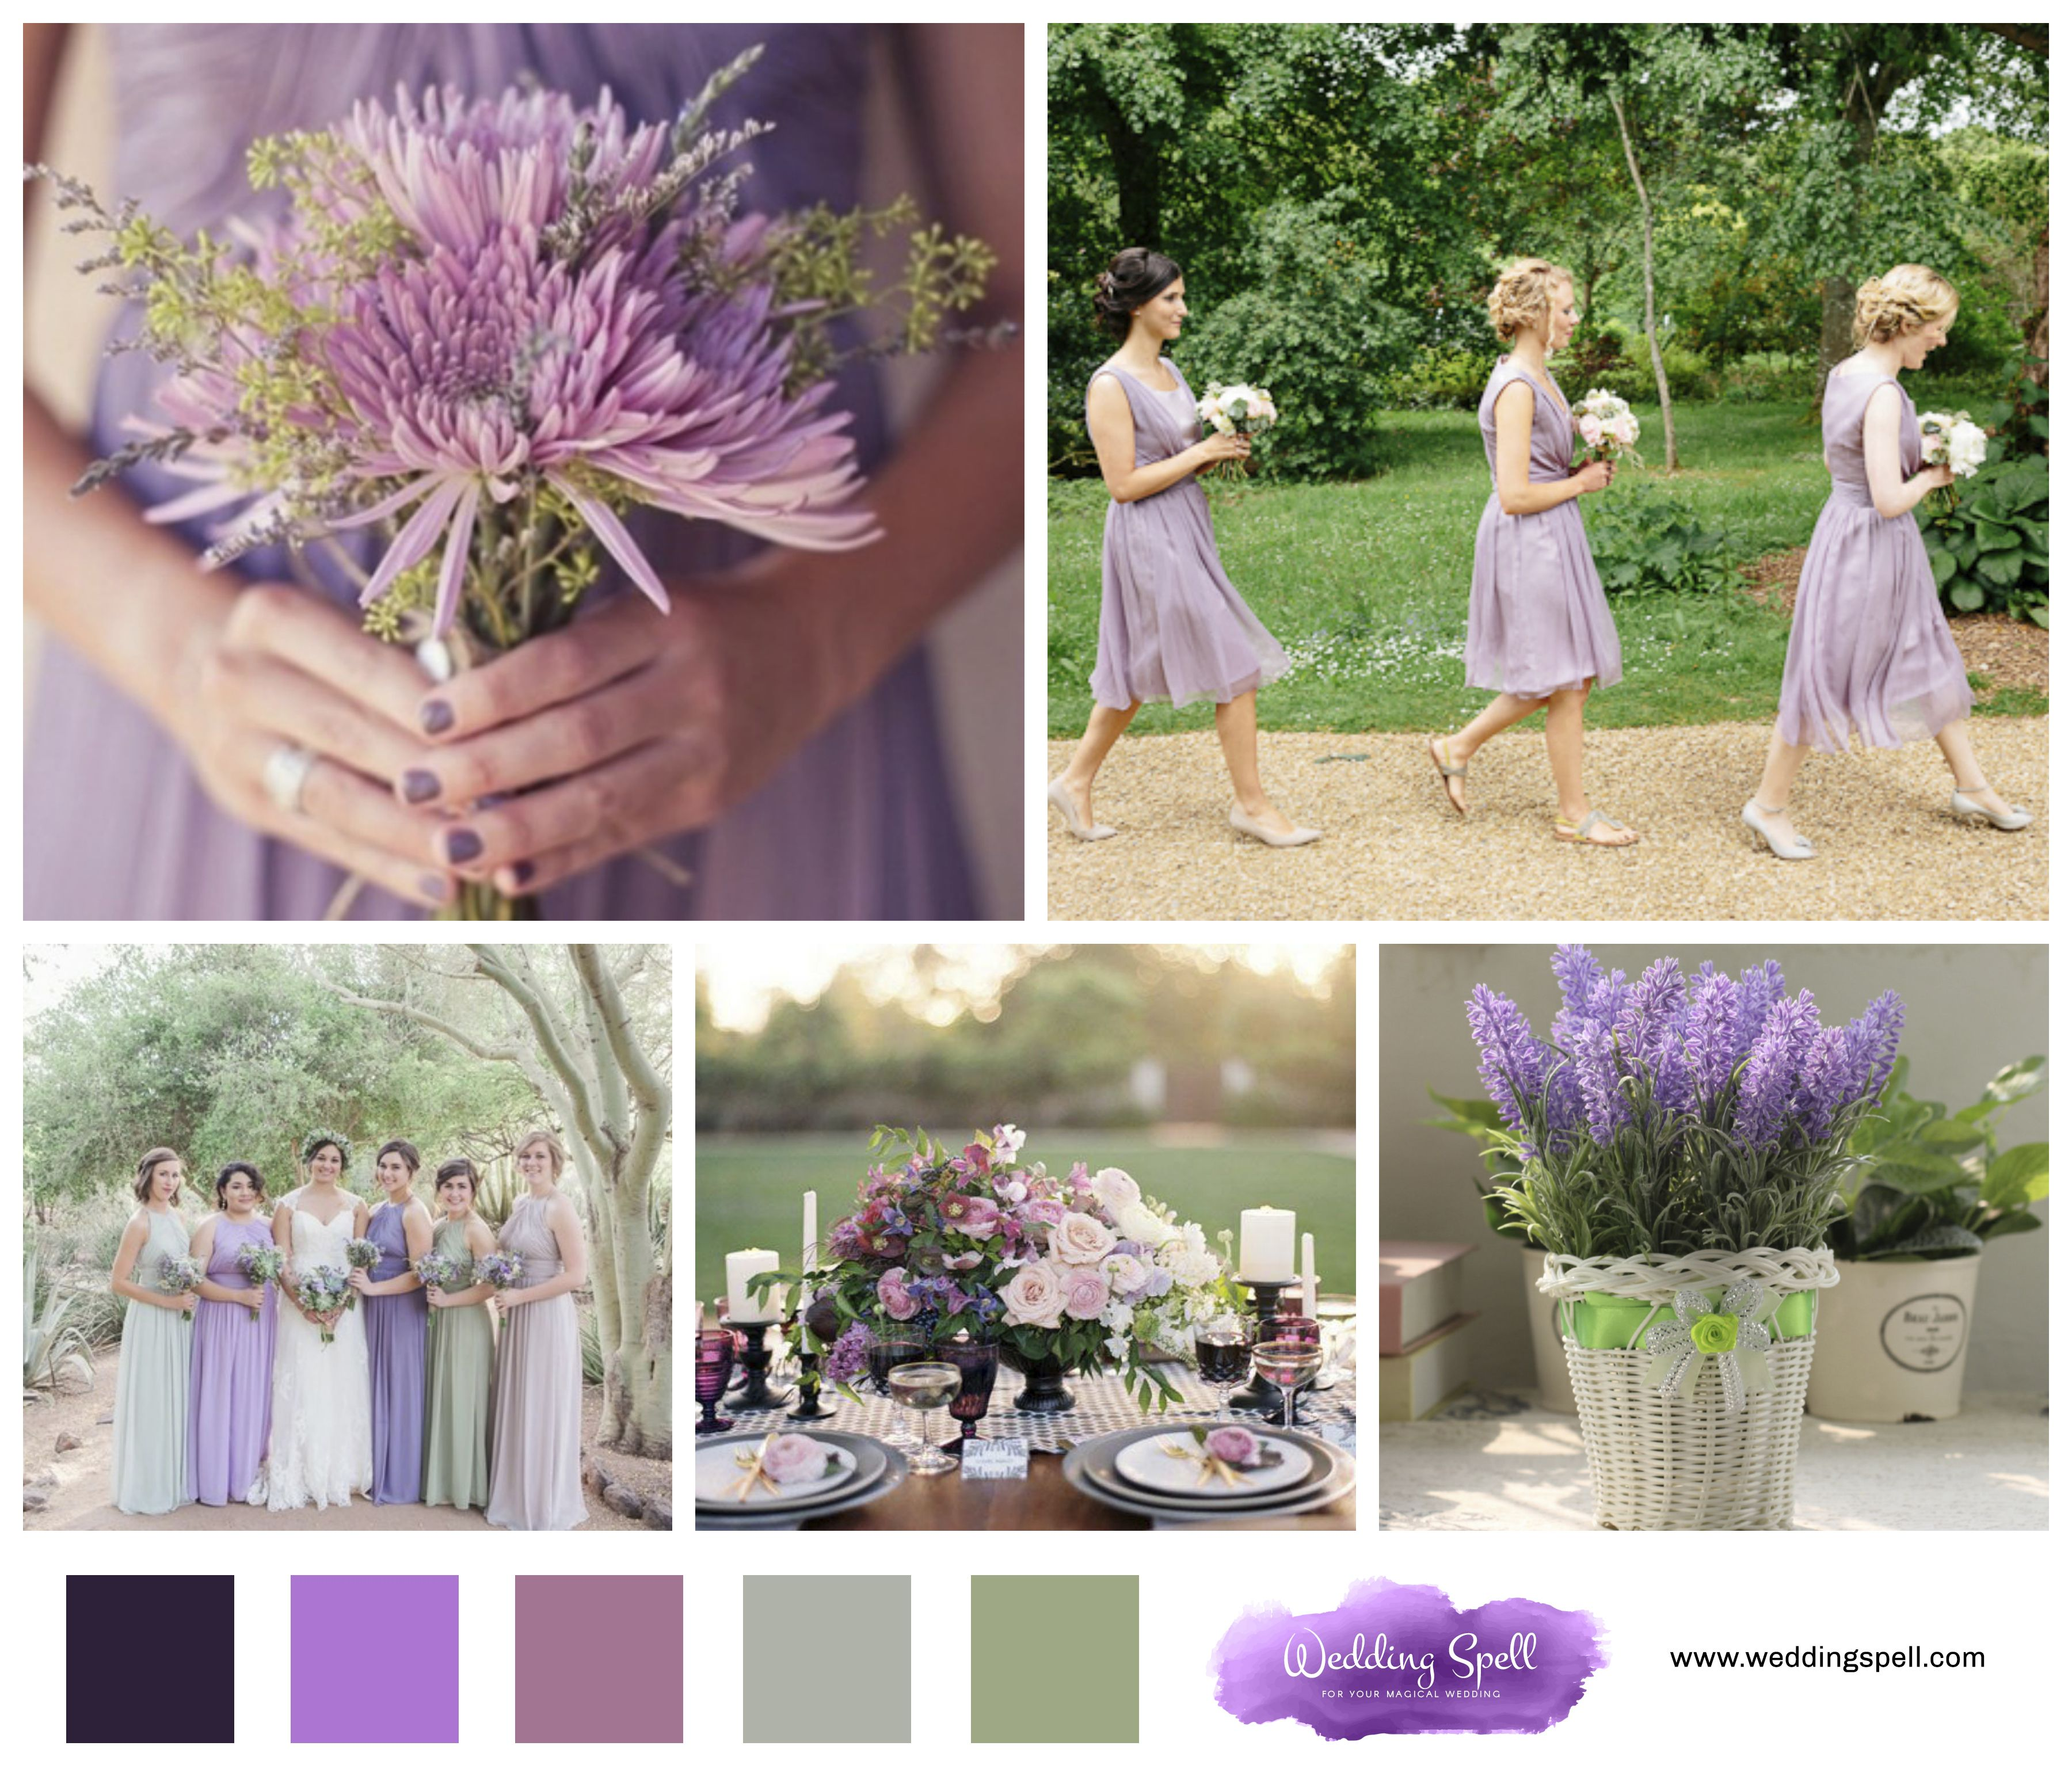 Stylish fall wedding colors 2017 wedding color themes pinterest stylish fall wedding colors 2017 junglespirit Images